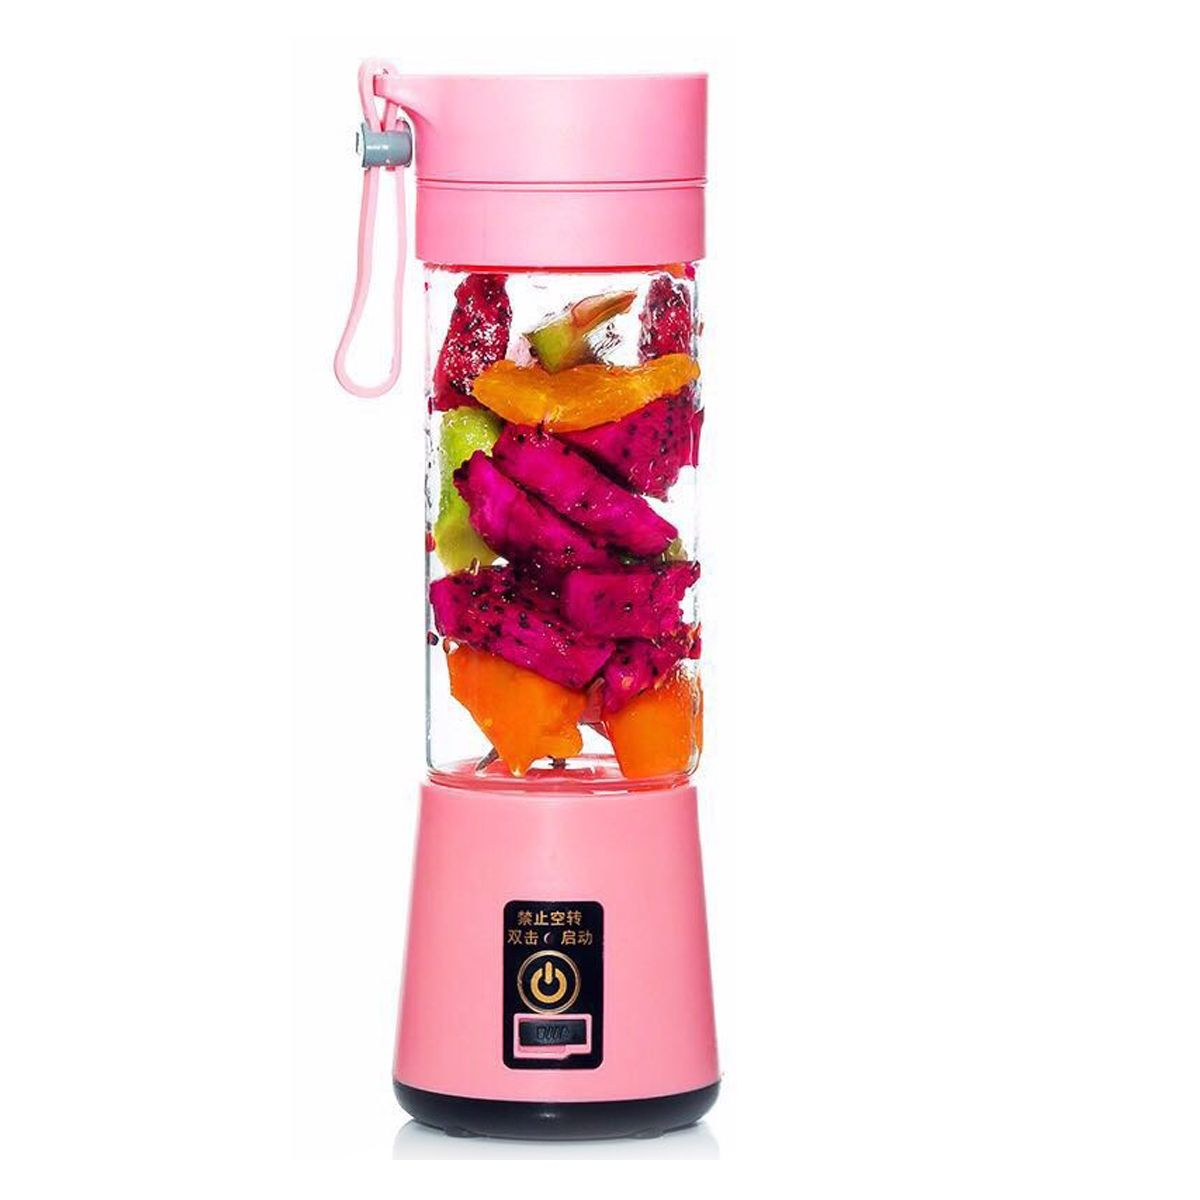 Hot 380ml USB Rechargeable Juicer Bottle Cup Juice Citrus Blender Lemon Vegetables Fruit Milkshake Smoothie Squeezers Reamers